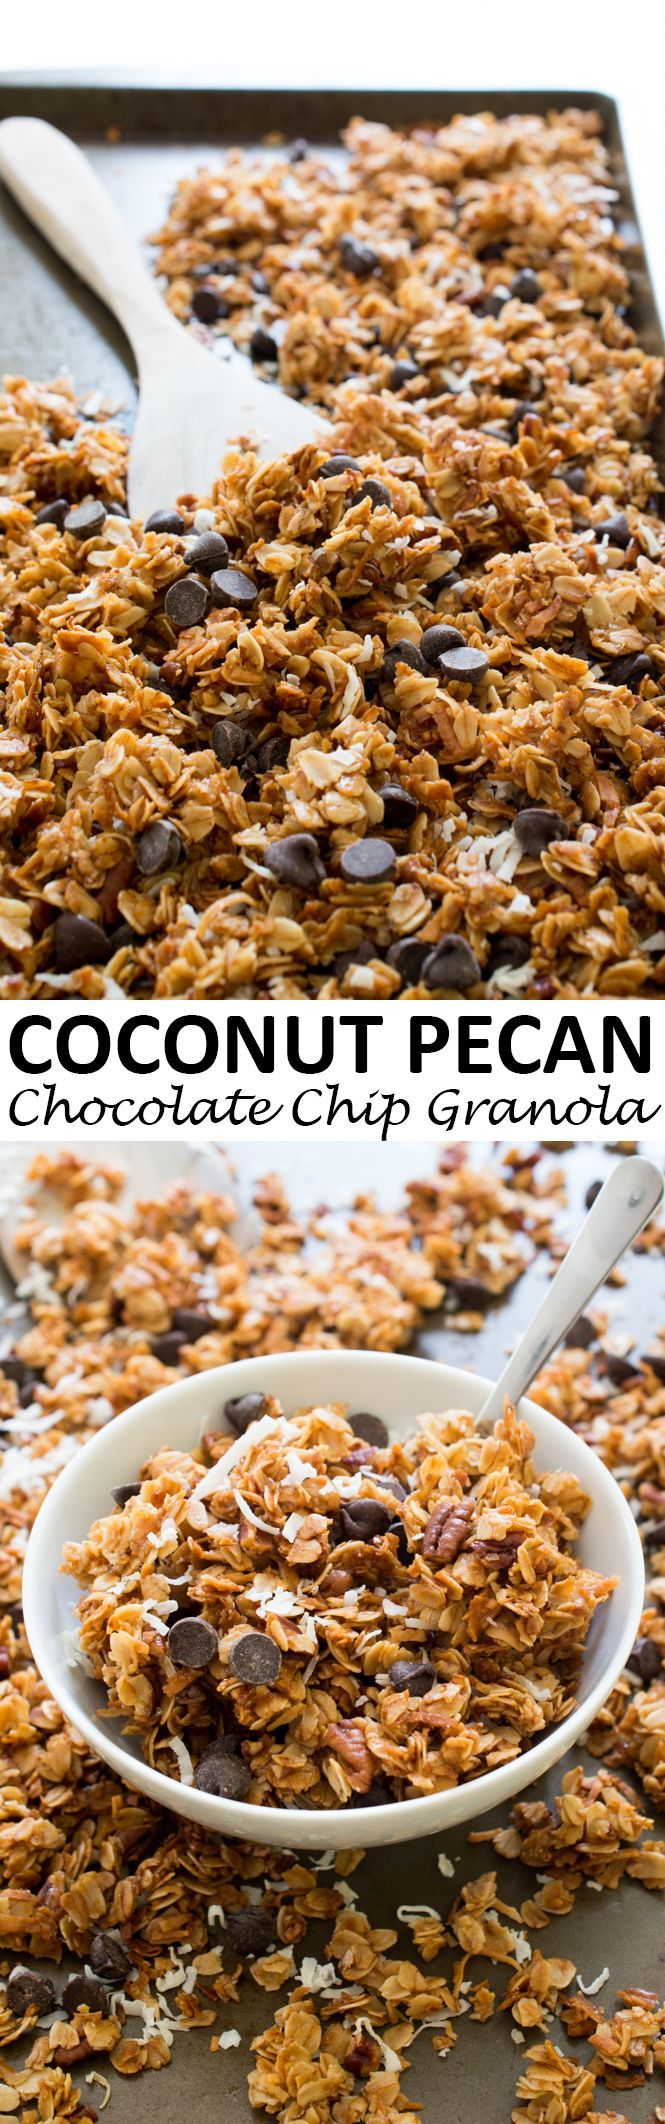 *Super easy homemade granola recipe! Would be so easy to vary it a bit. Add flax, chia, dried cherries/cranberries/blueberries...* 5 Ingredient Coconut Pecan Chocolate Chip Granola.